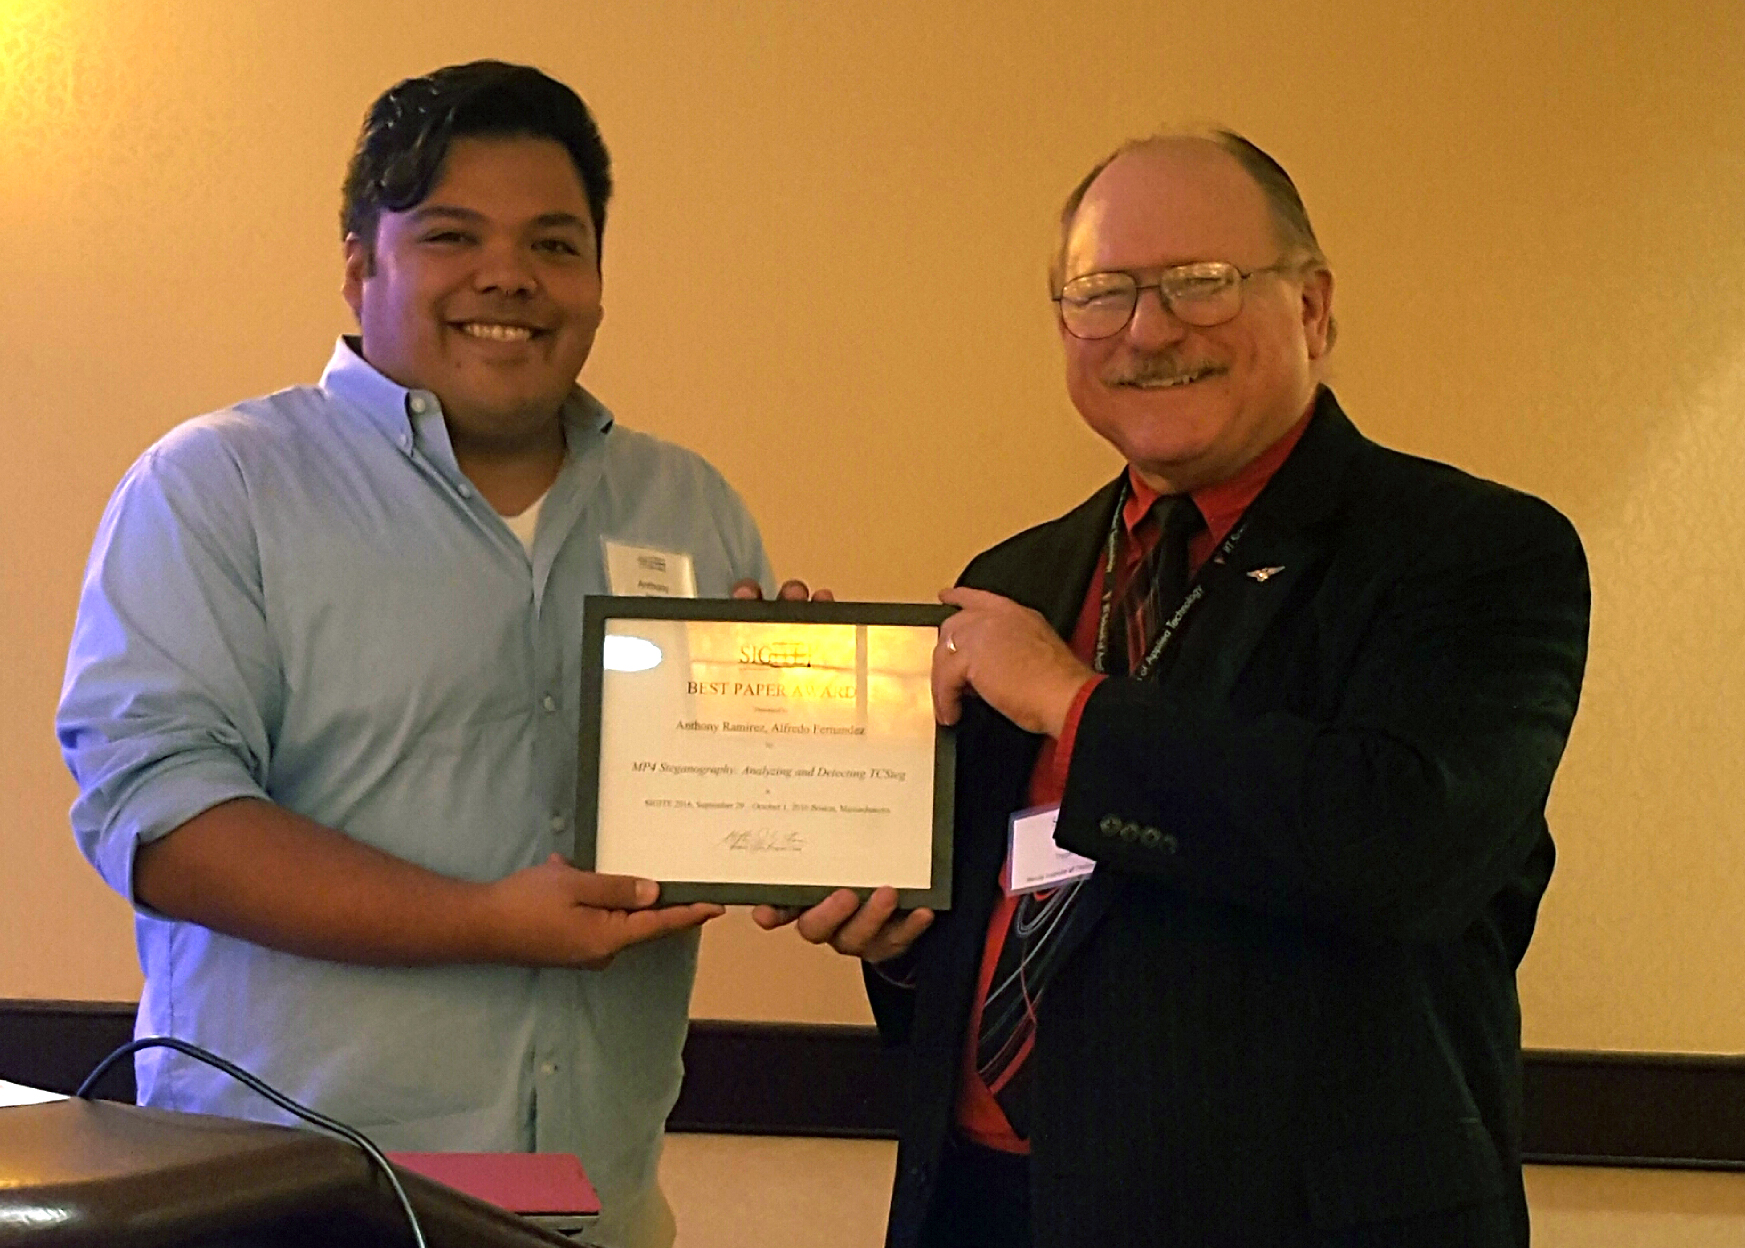 Anthony Ramirez receives the SIGITE Best paper Award